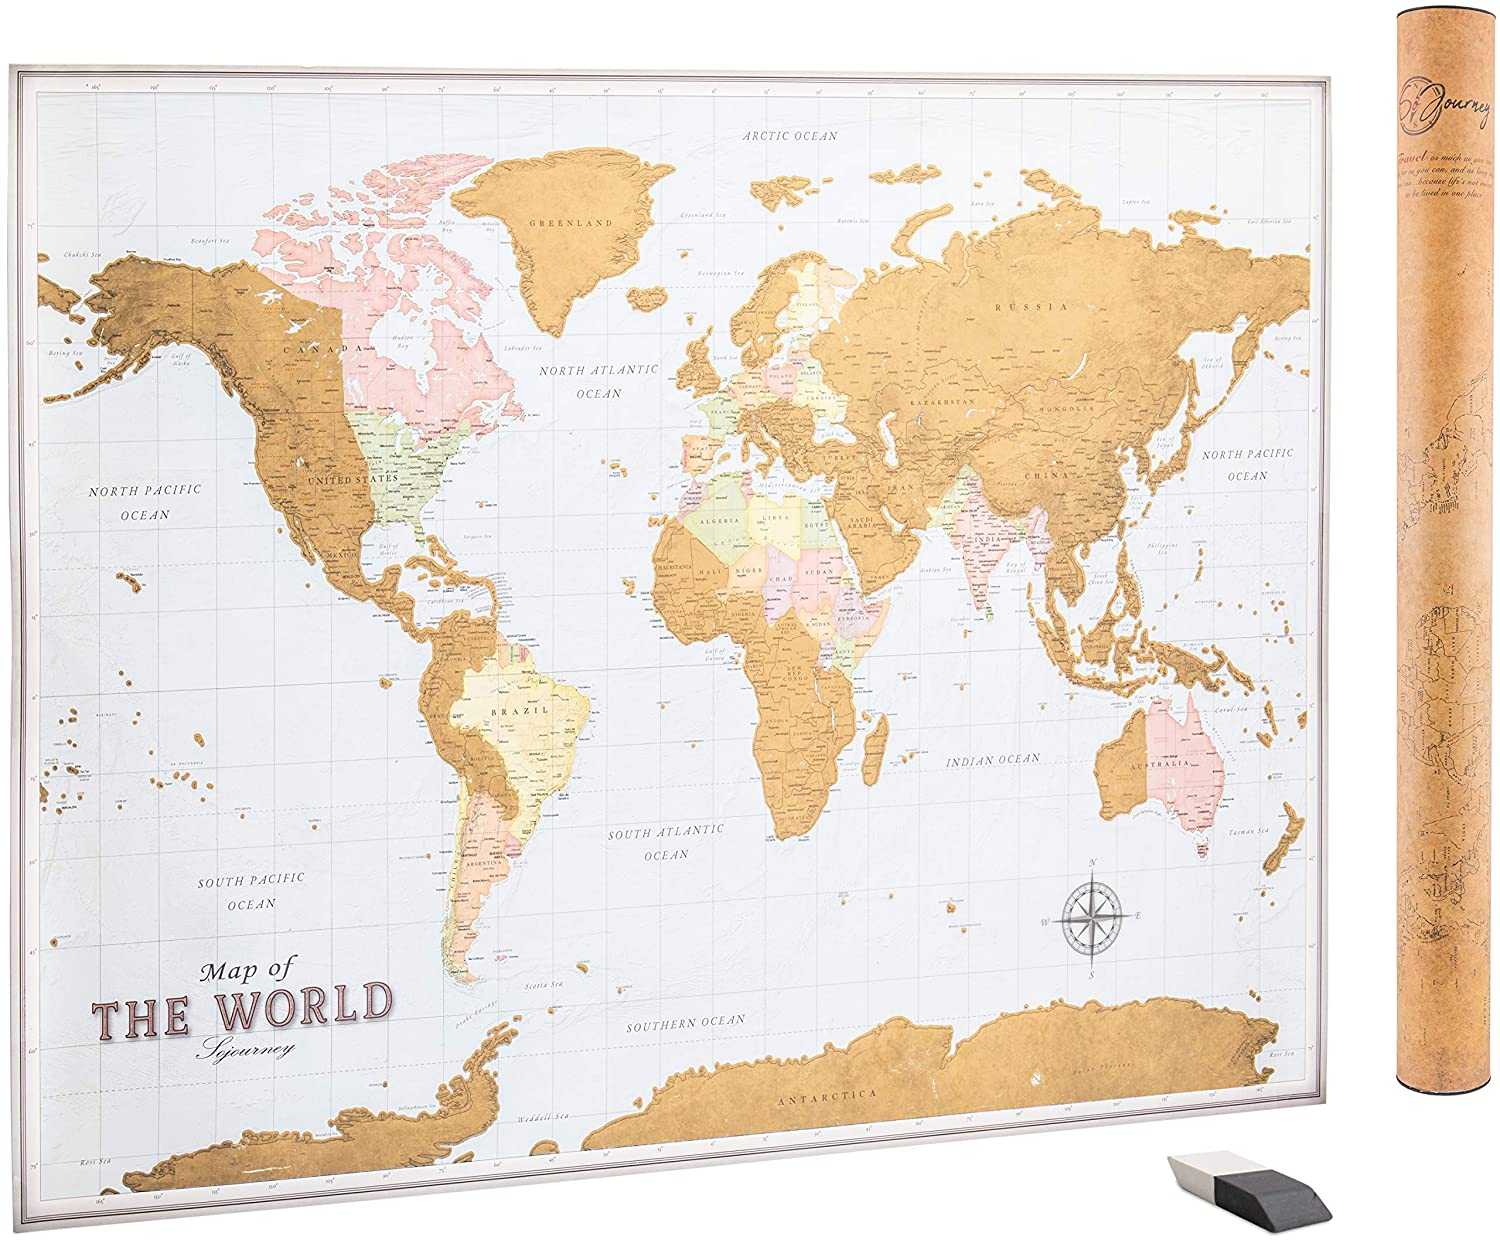 Amazoncom Scratch Off Map Of The World World Scratch Off Map - Map-of-the-world-with-us-states